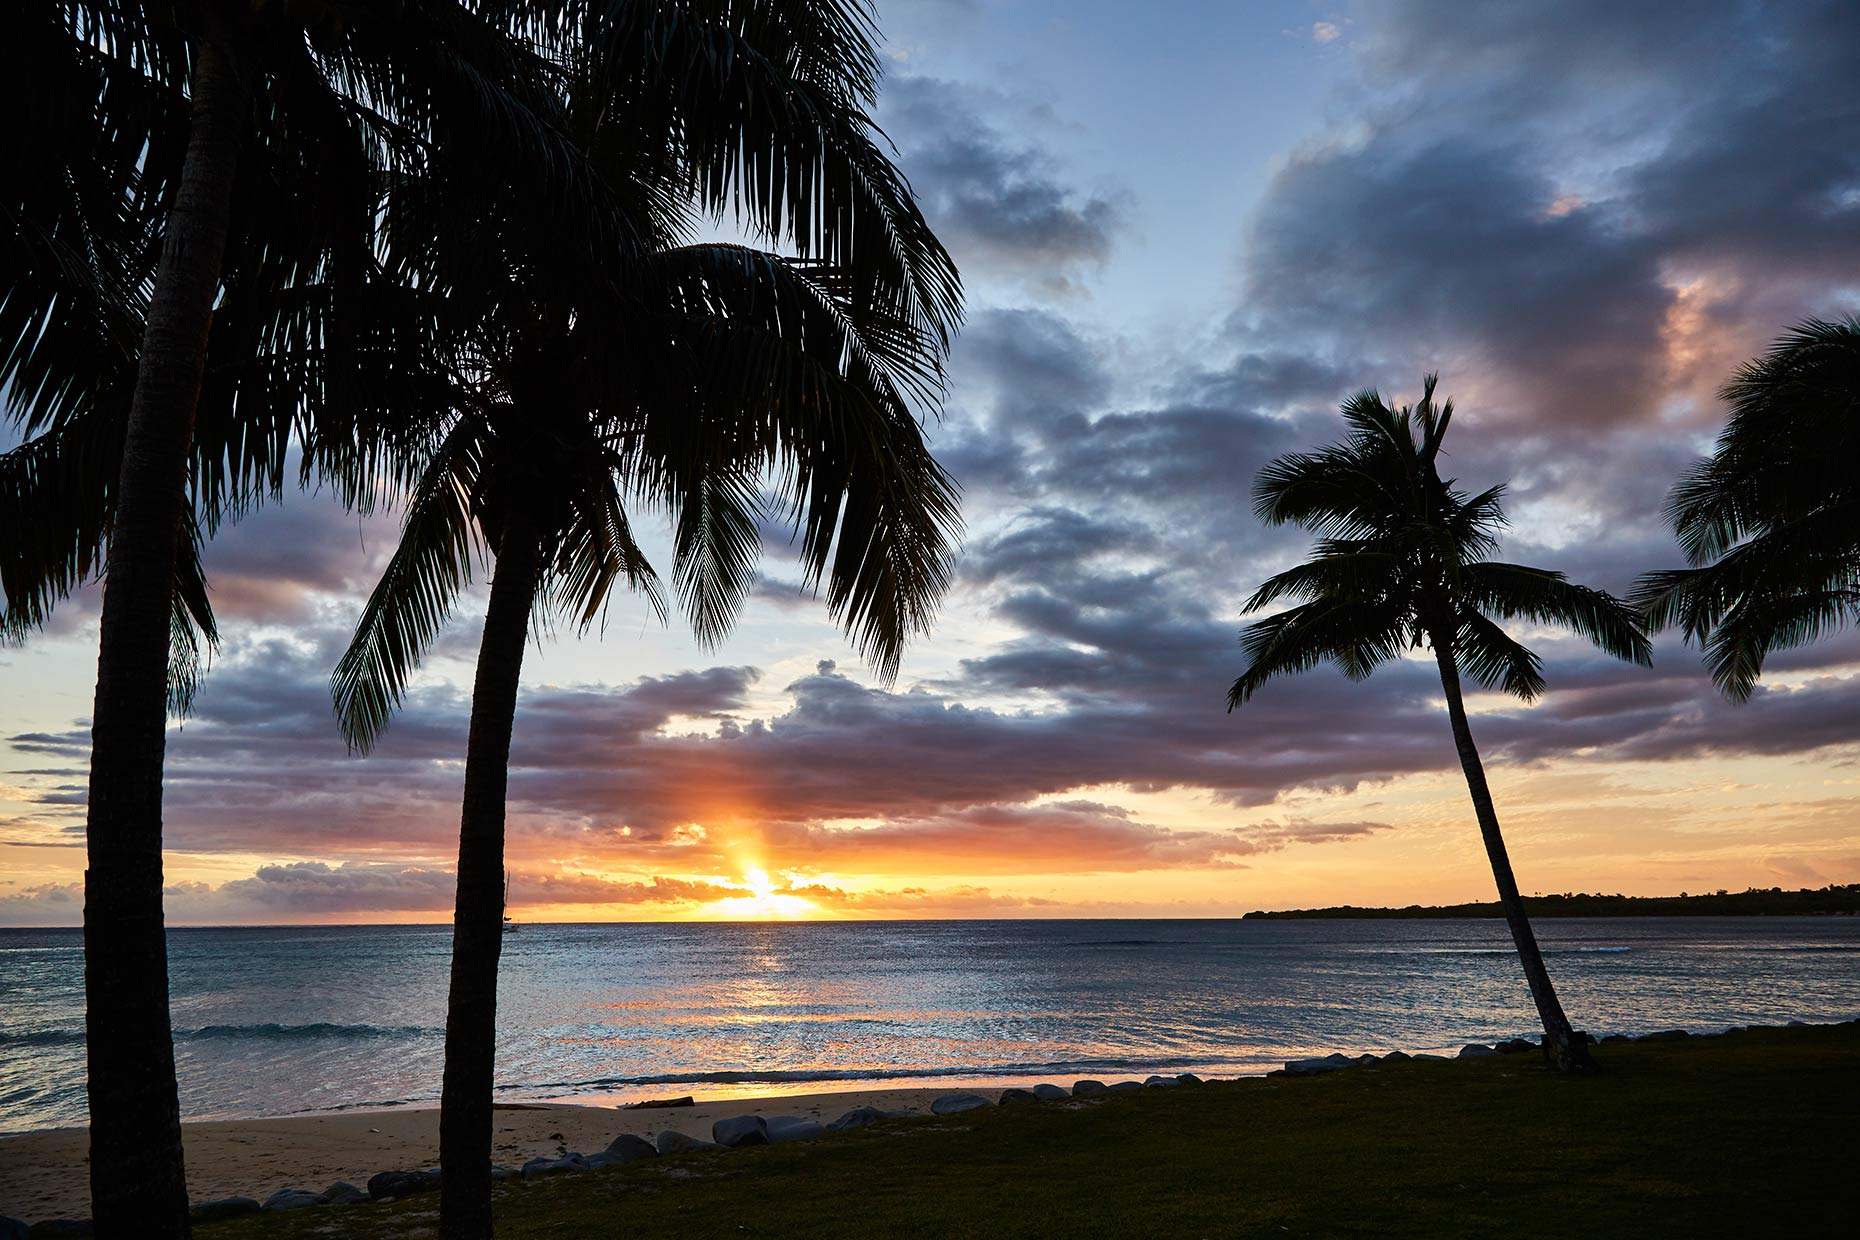 World-Venture_FIji_Day-5_Sunset_010